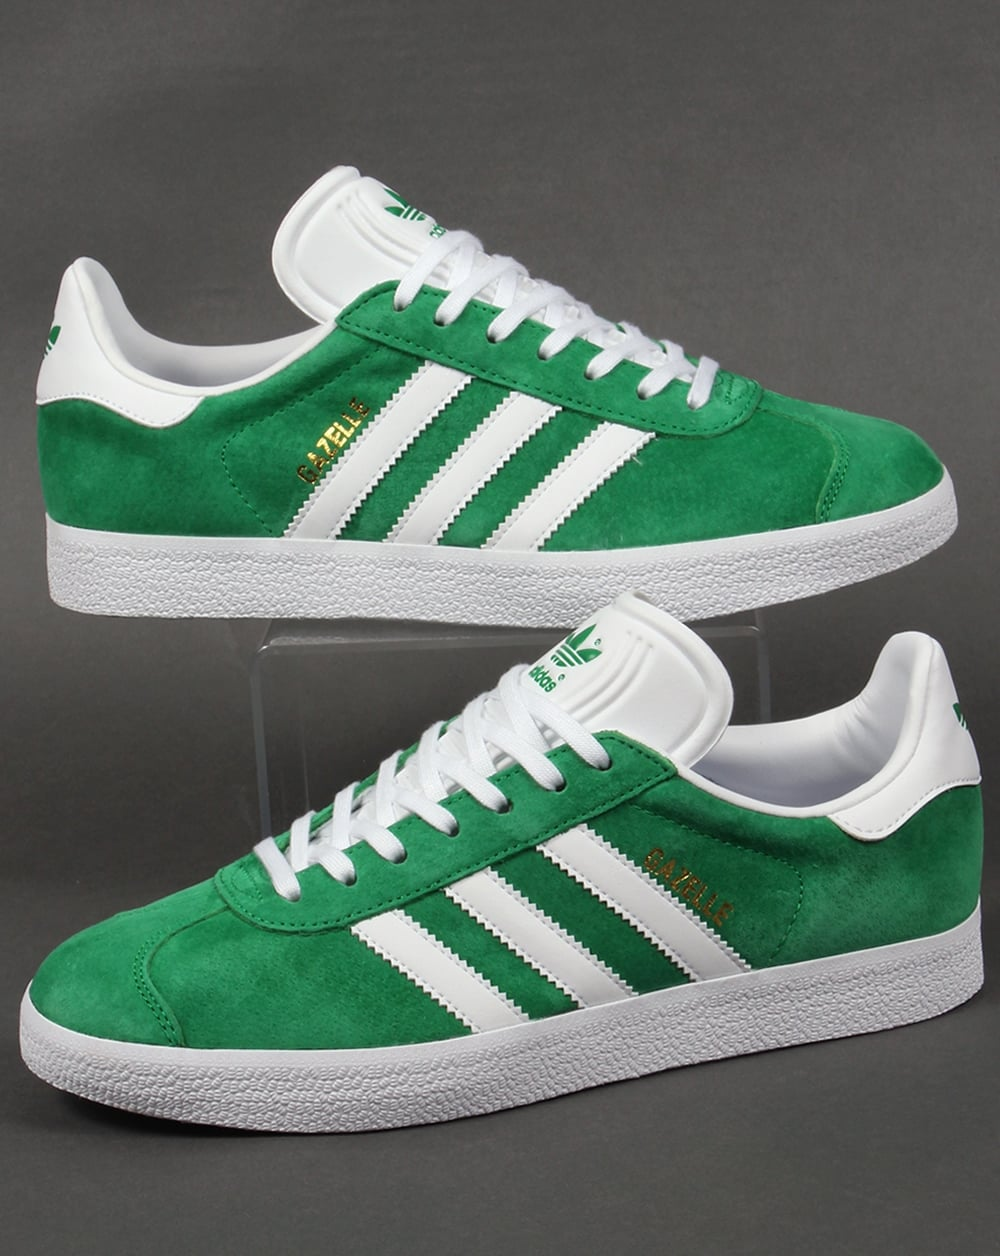 new concept b726b d706b adidas Trainers Adidas Gazelle Trainers Green White